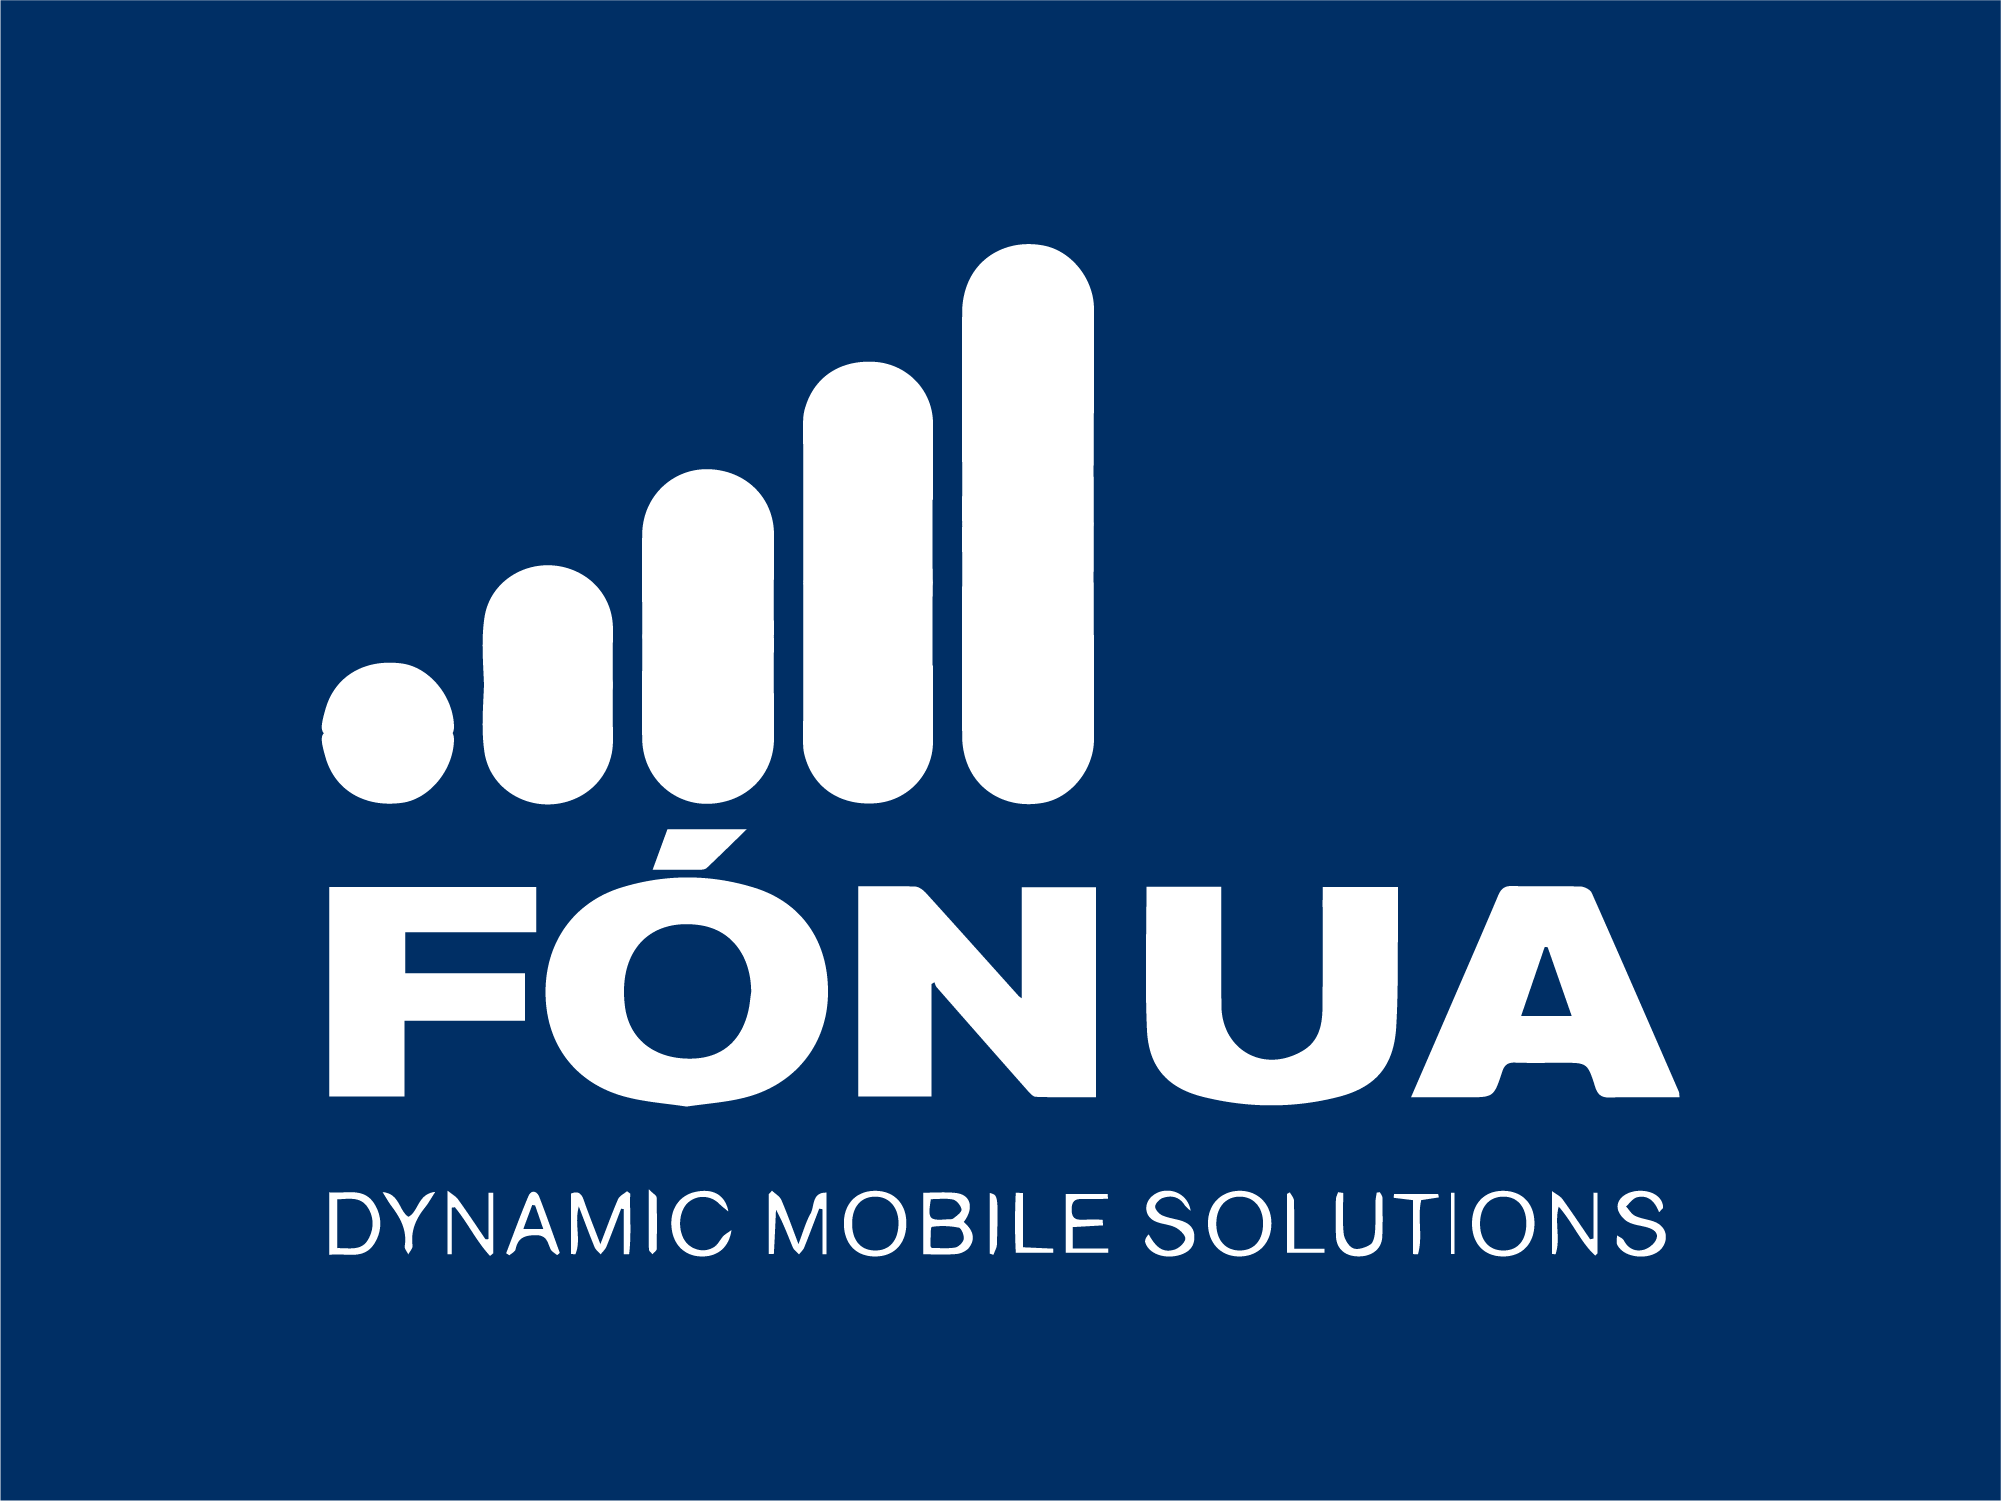 Fónua - Adivsed on majority stake acquisition in 20:20 Mobile Ireland